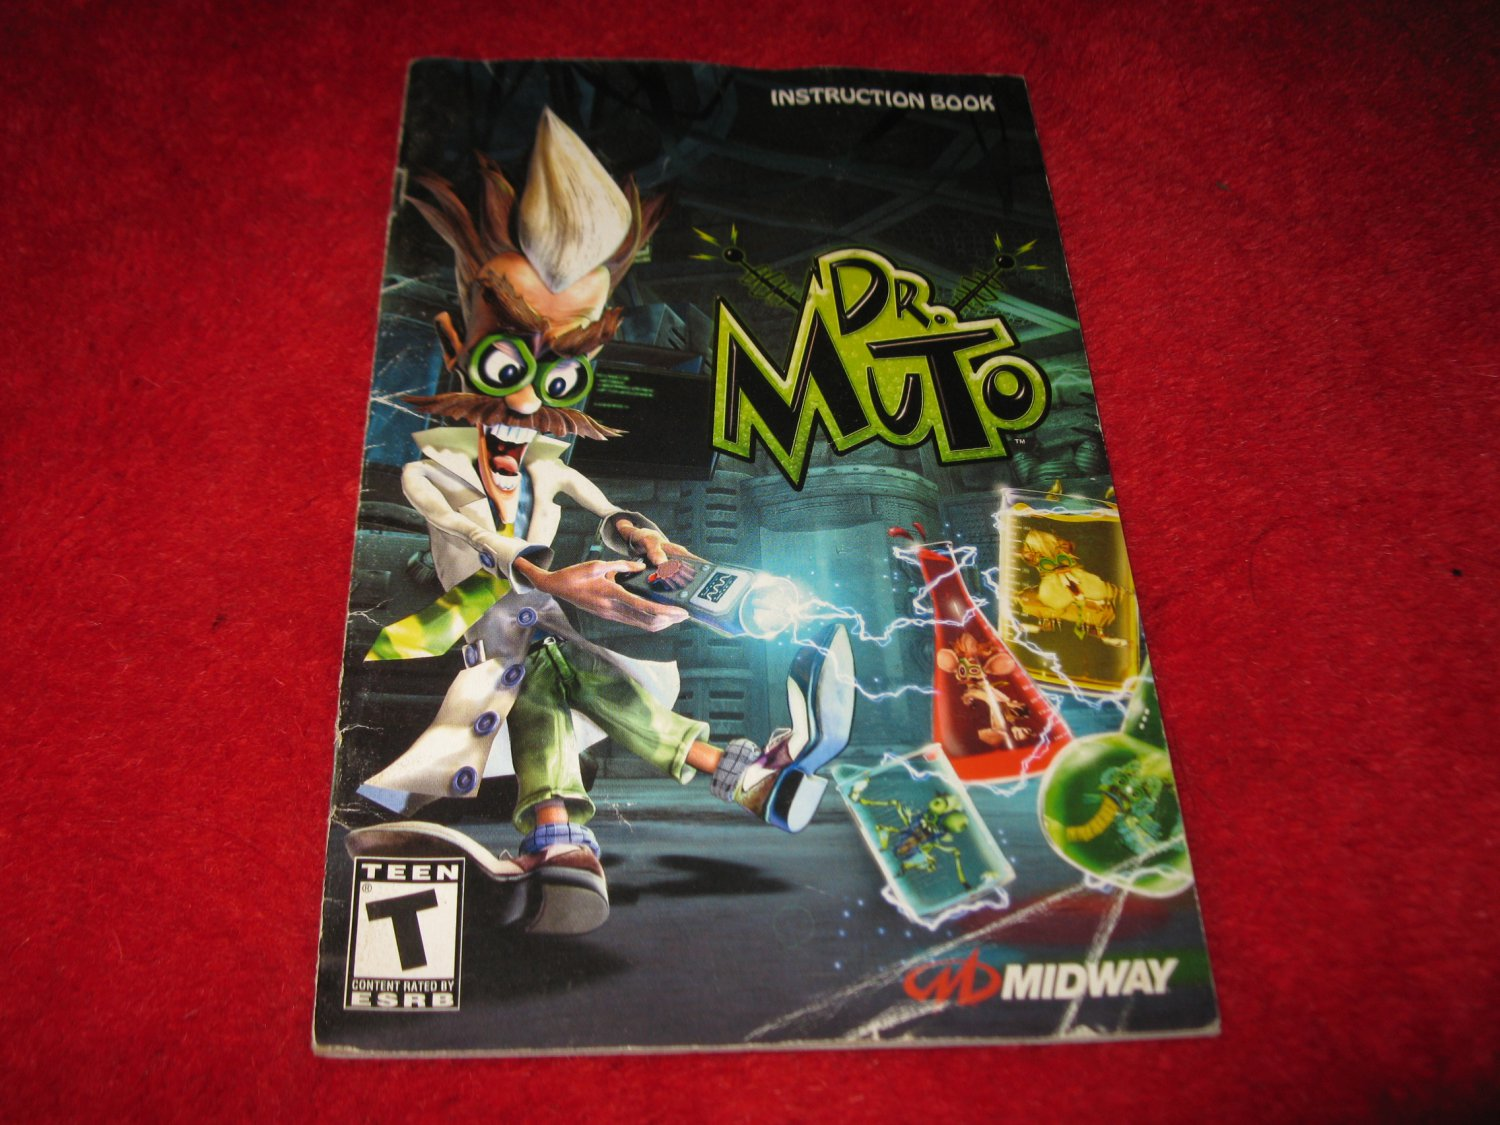 Dr. Muto : Playstation 2 PS2 Video Game Instruction Booklet